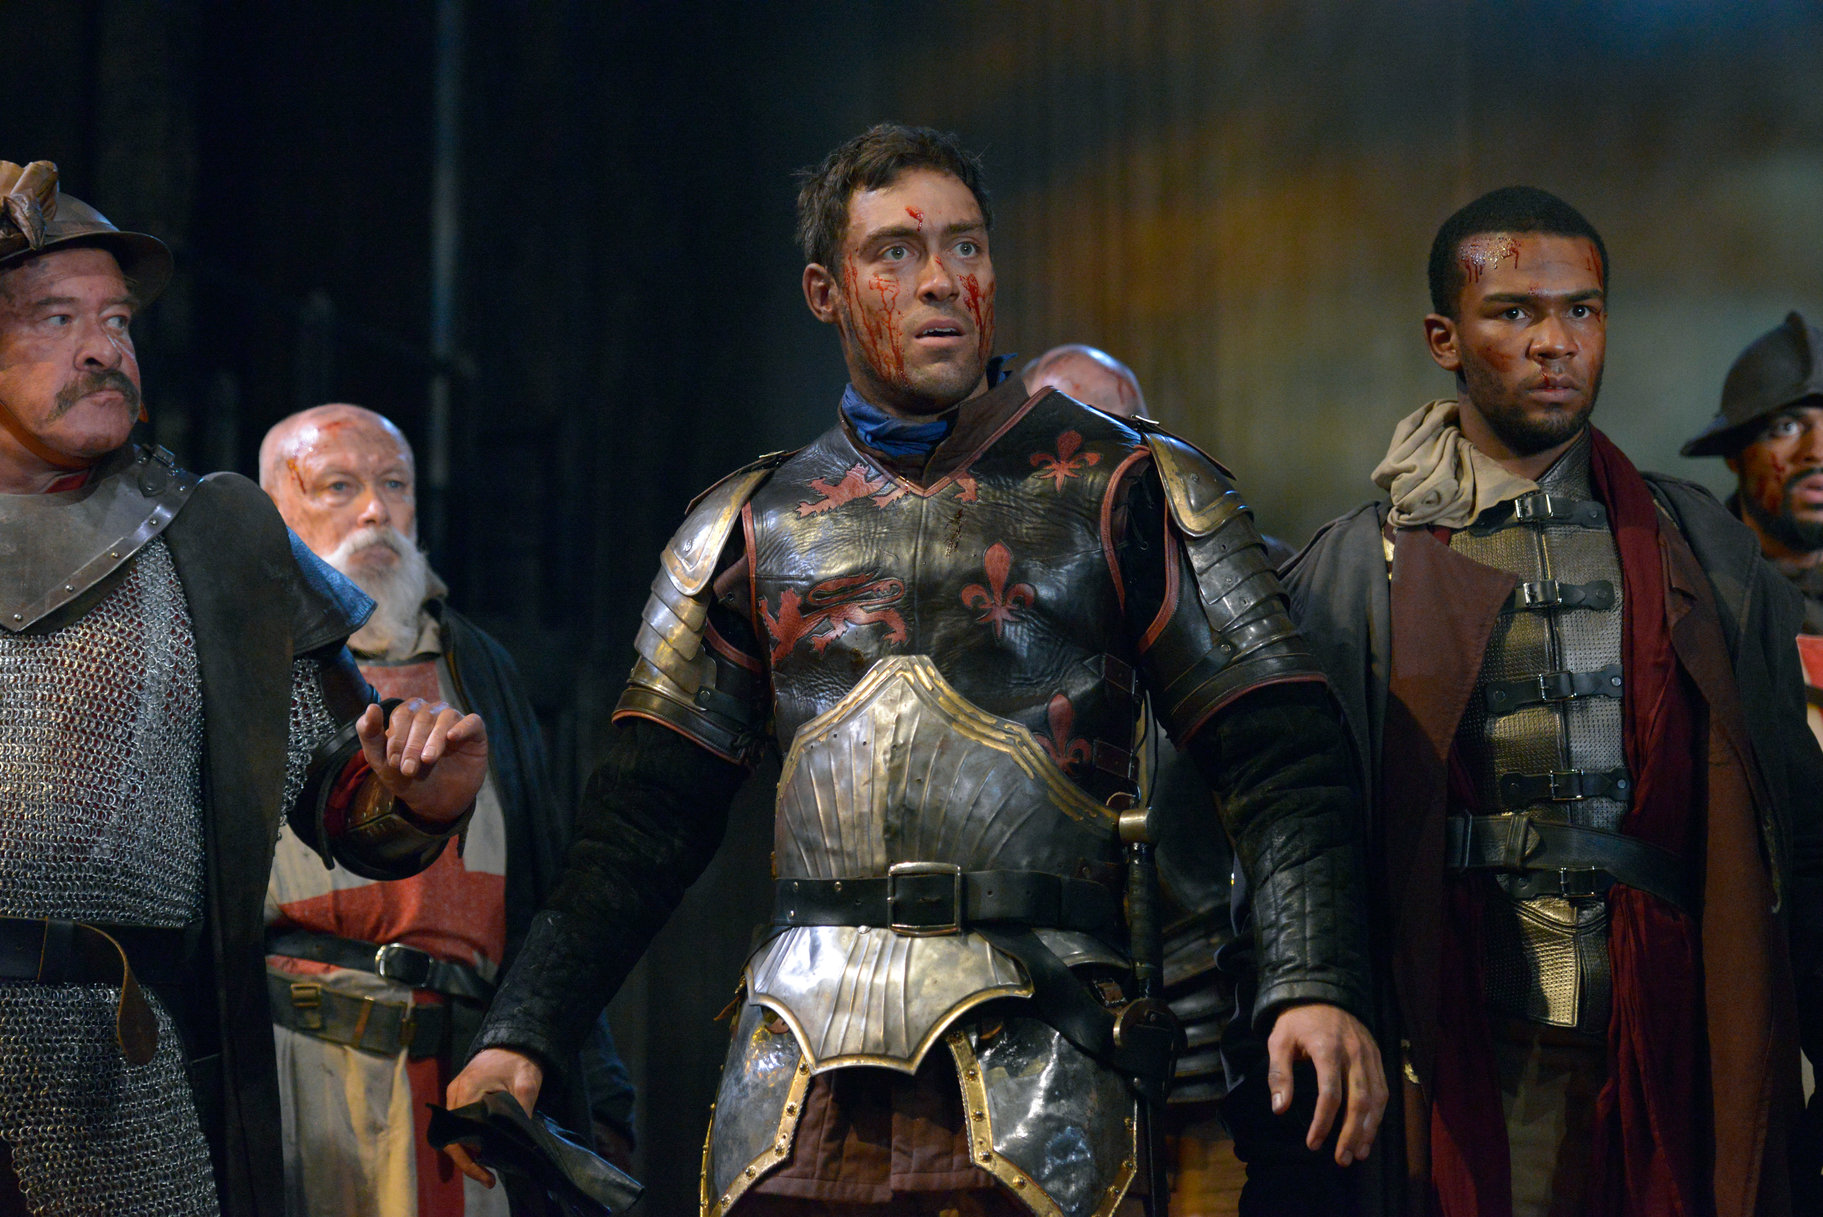 henry-v-production-photos_-2015_2015_photo-by-keith-pattison-_c_-rsc_171527.tmb-img-1824